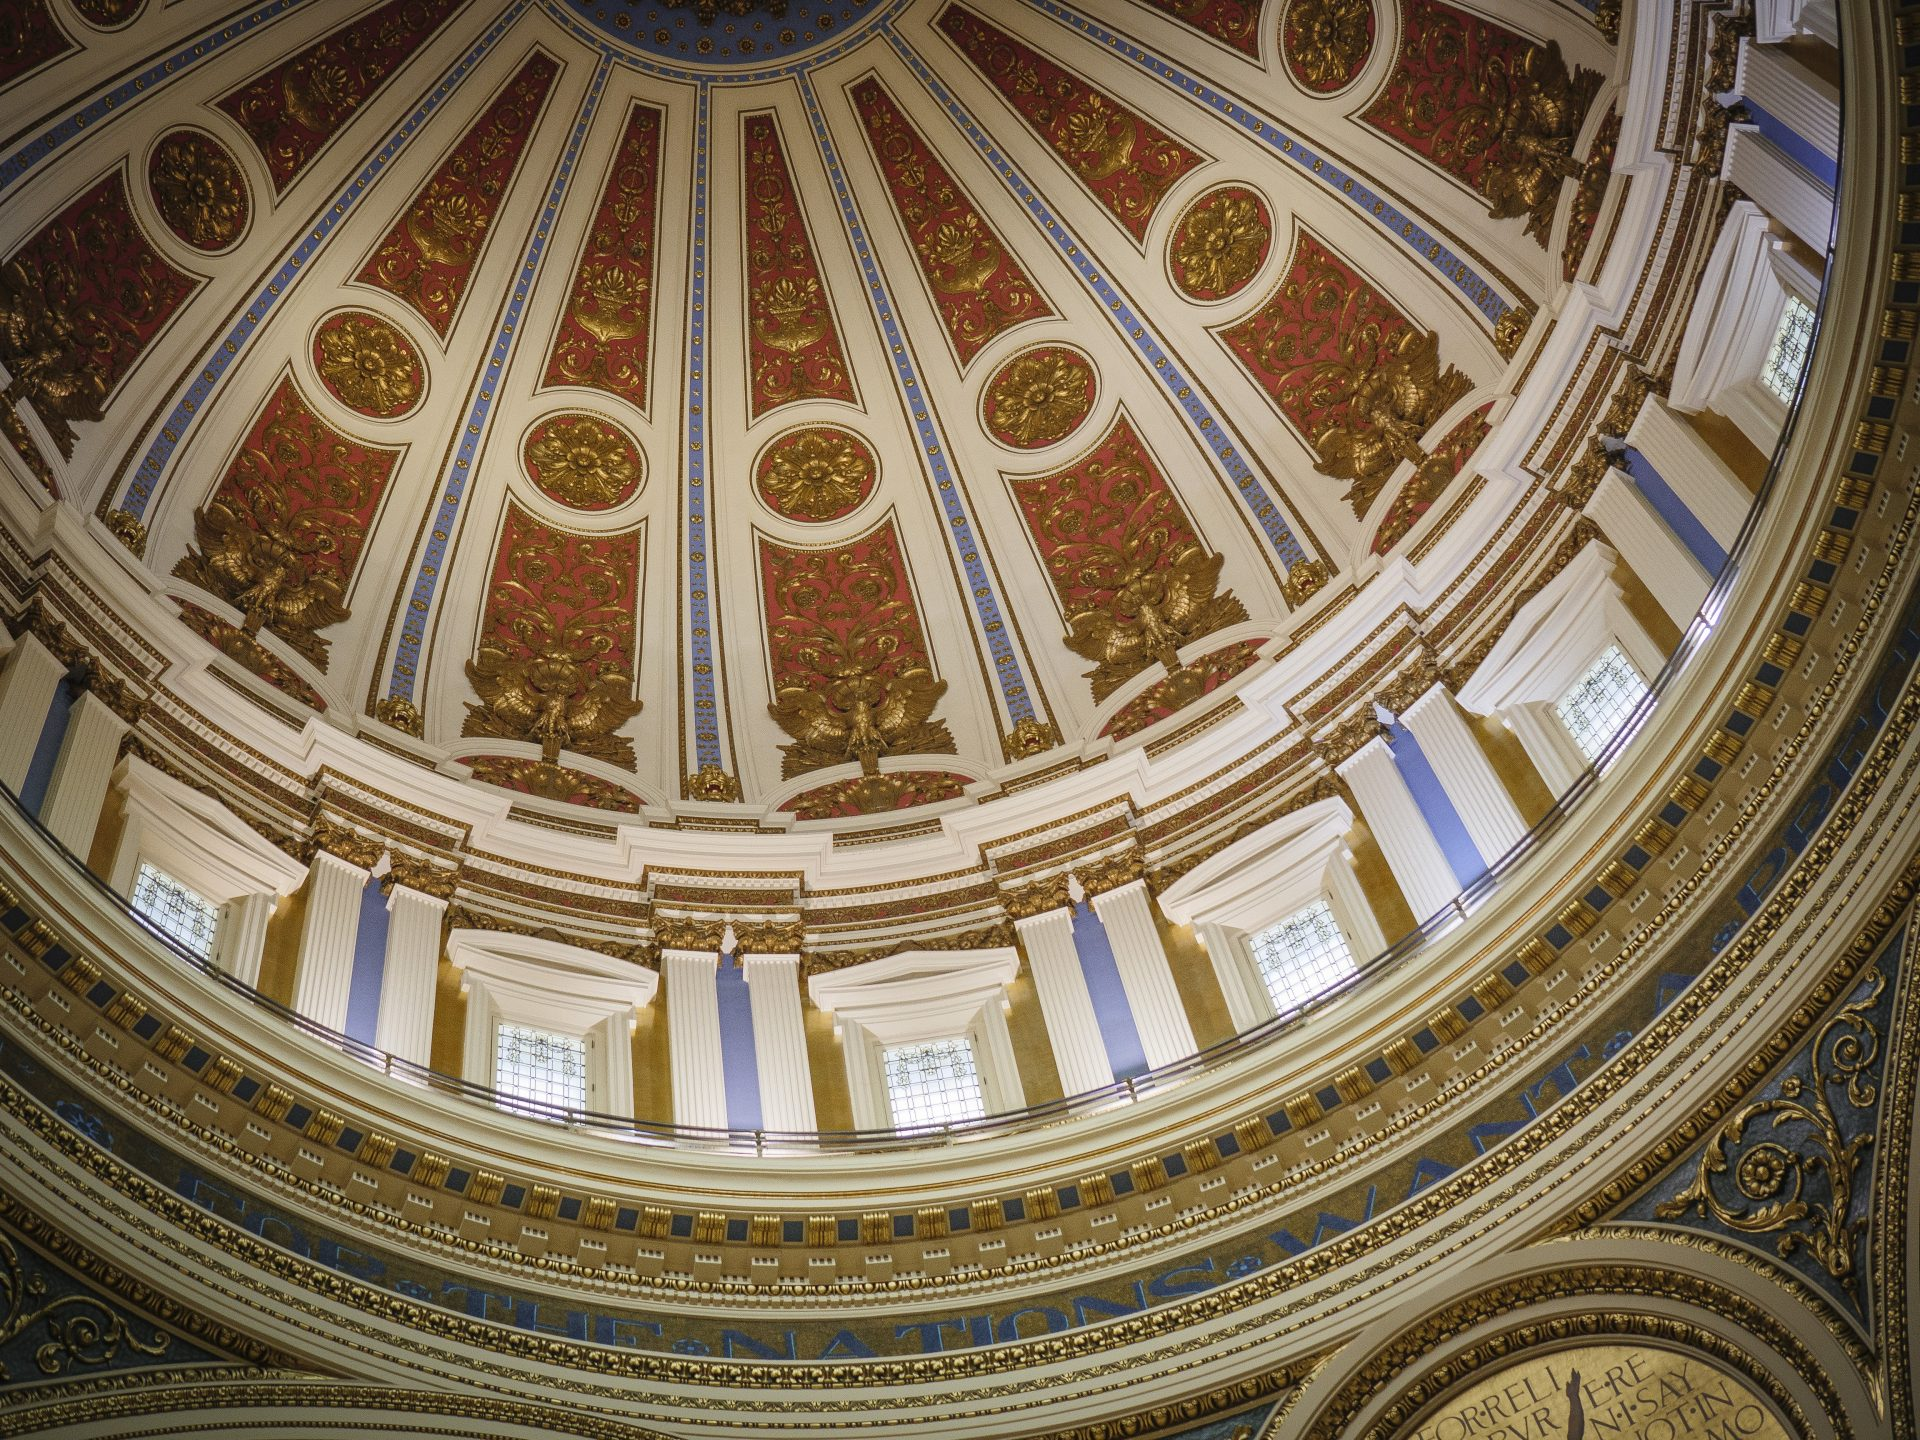 Interior shot of the Pennsylvania State Capitol.